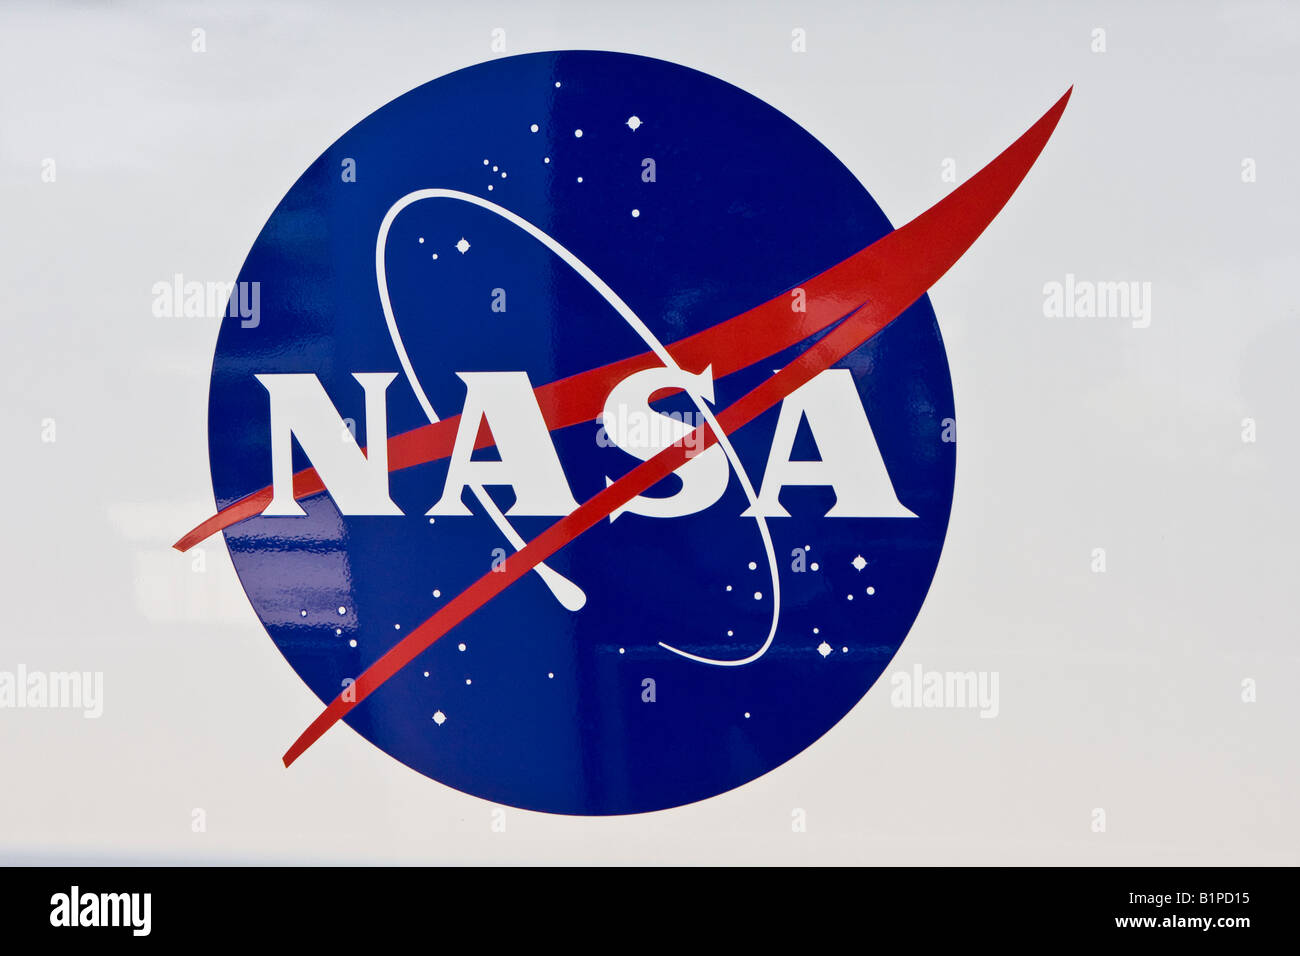 NASA Seal and Logo Sign - Stock Image